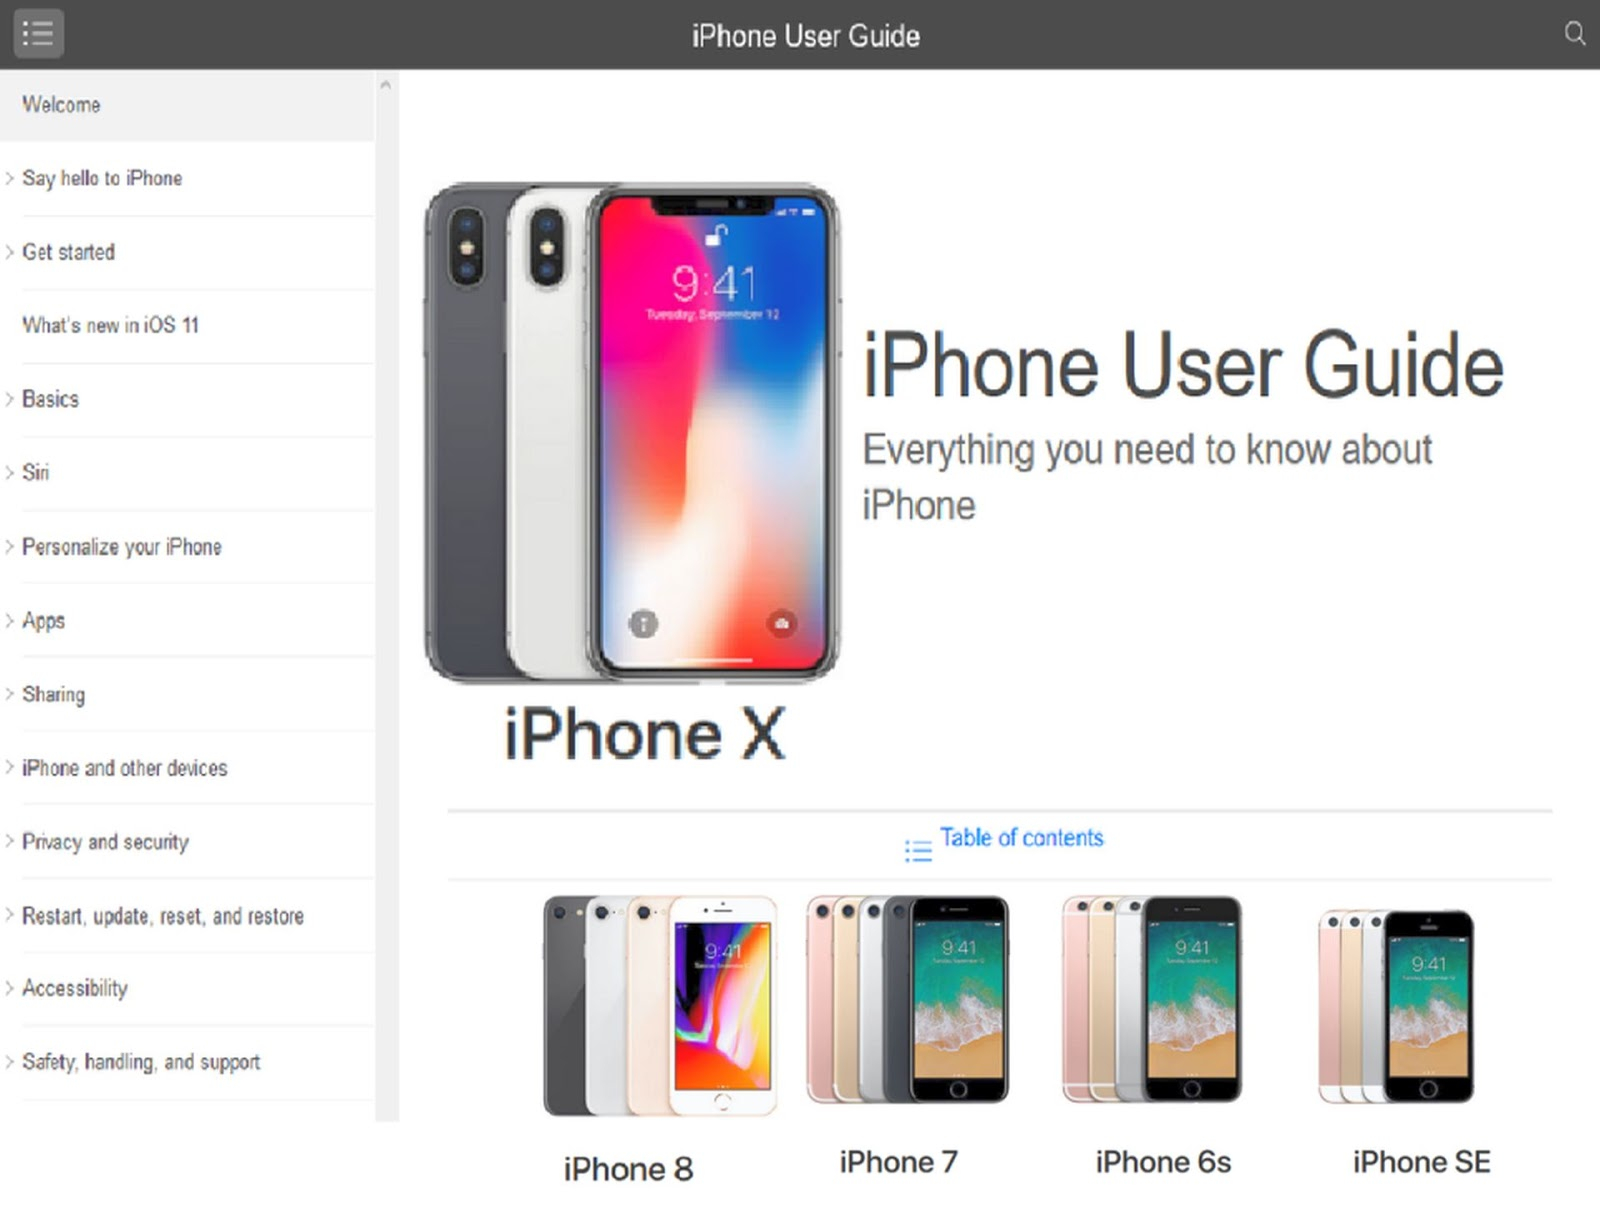 iPhone 8 user guide, iPhone 8 plus user manual and new iPhone X user guide